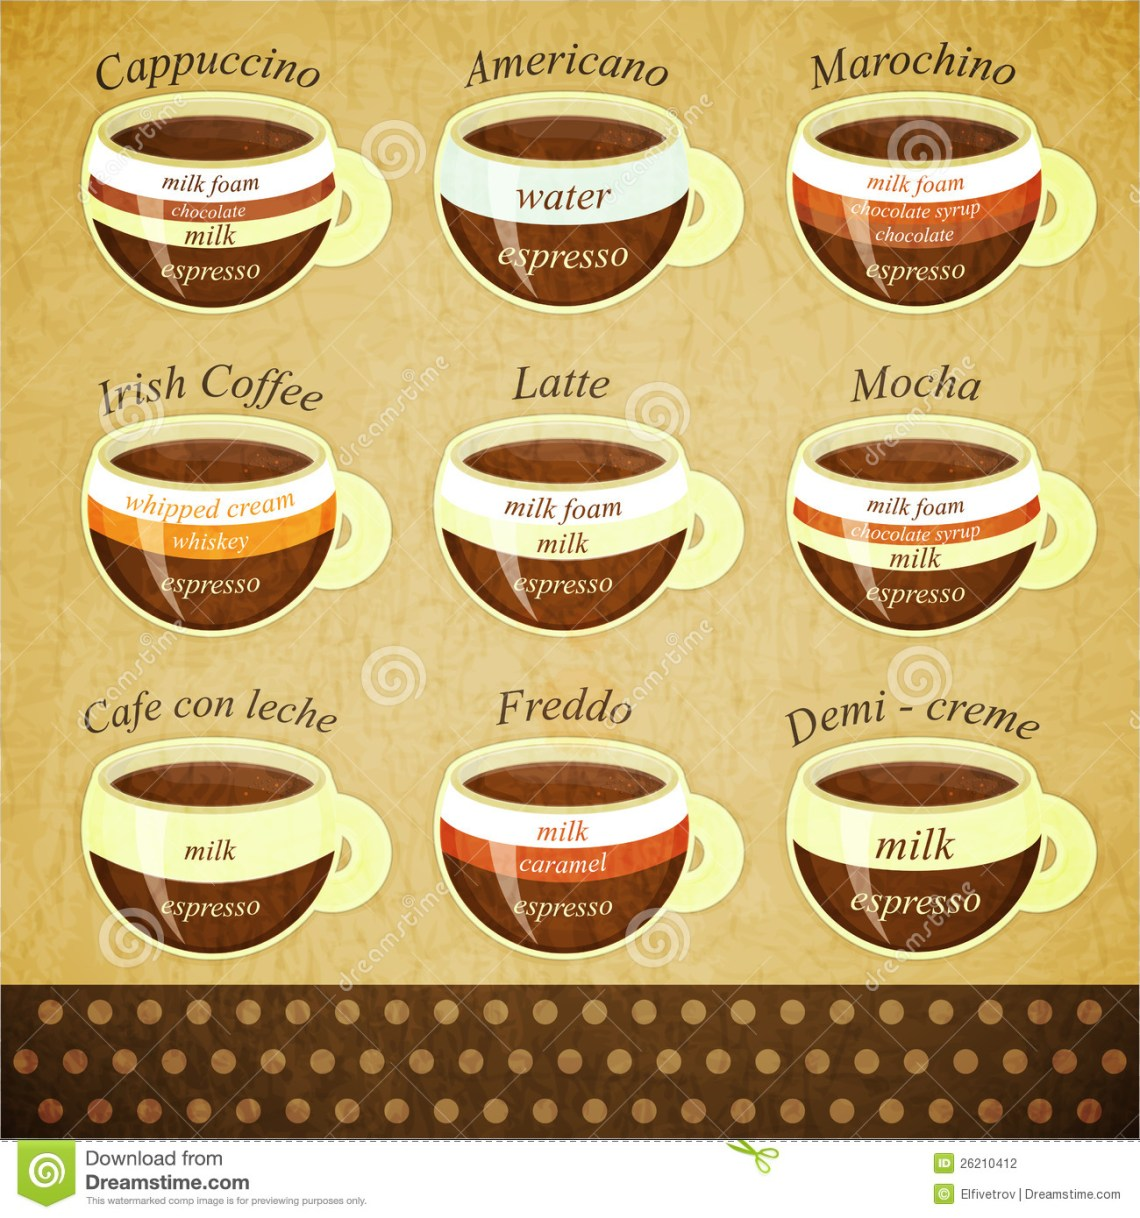 Image Result For Is A Cup Of Coffee A Day Bad For You